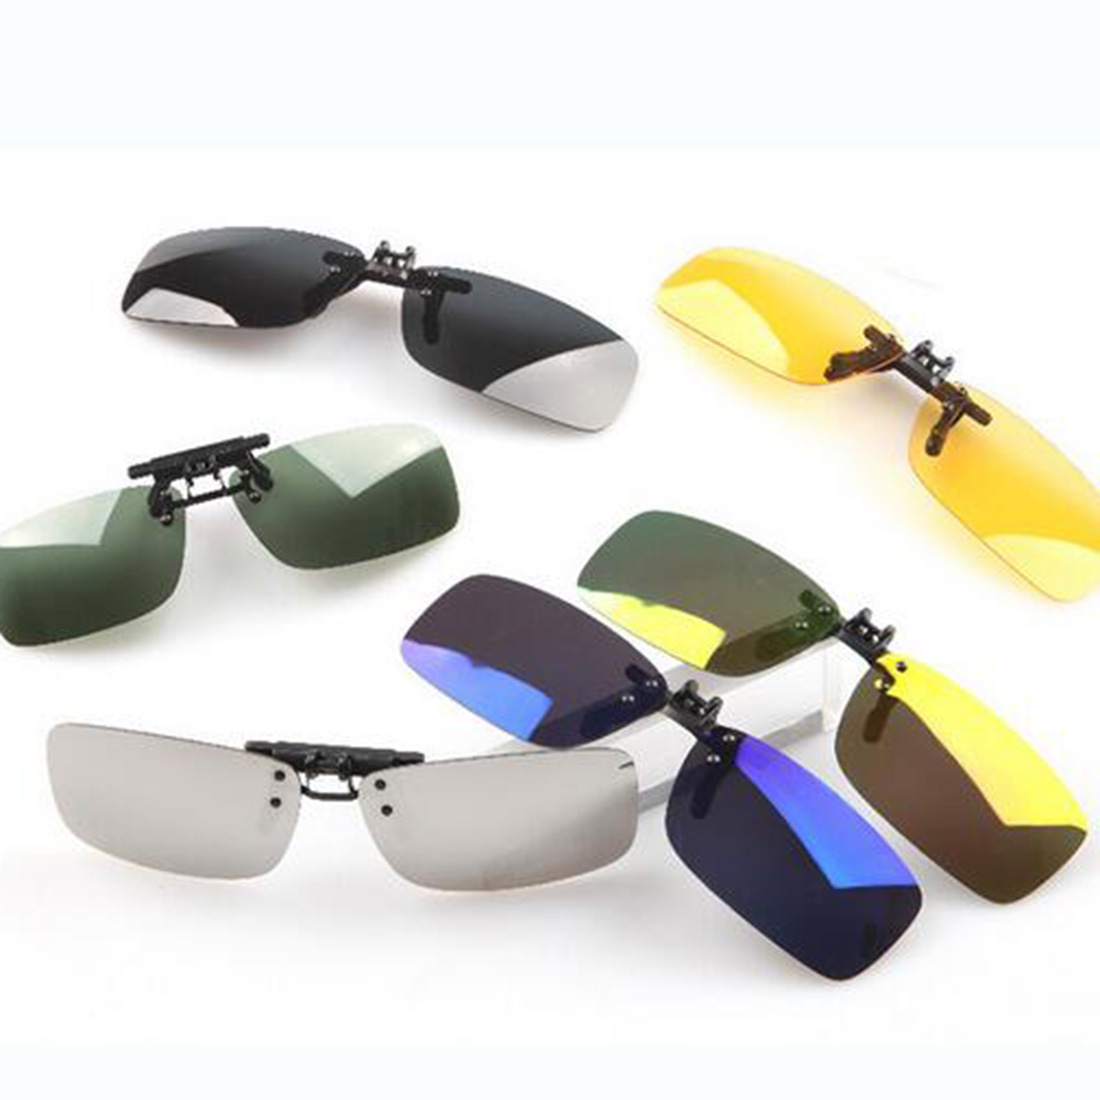 Unisex Polarized Clip On Sunglasses Driving Night Vision Lens Anti-UVA Anti-UVB Cycling Riding Sunglasses Clip For Near-Sighted платье розовое billieblush ут 00011545 page 8